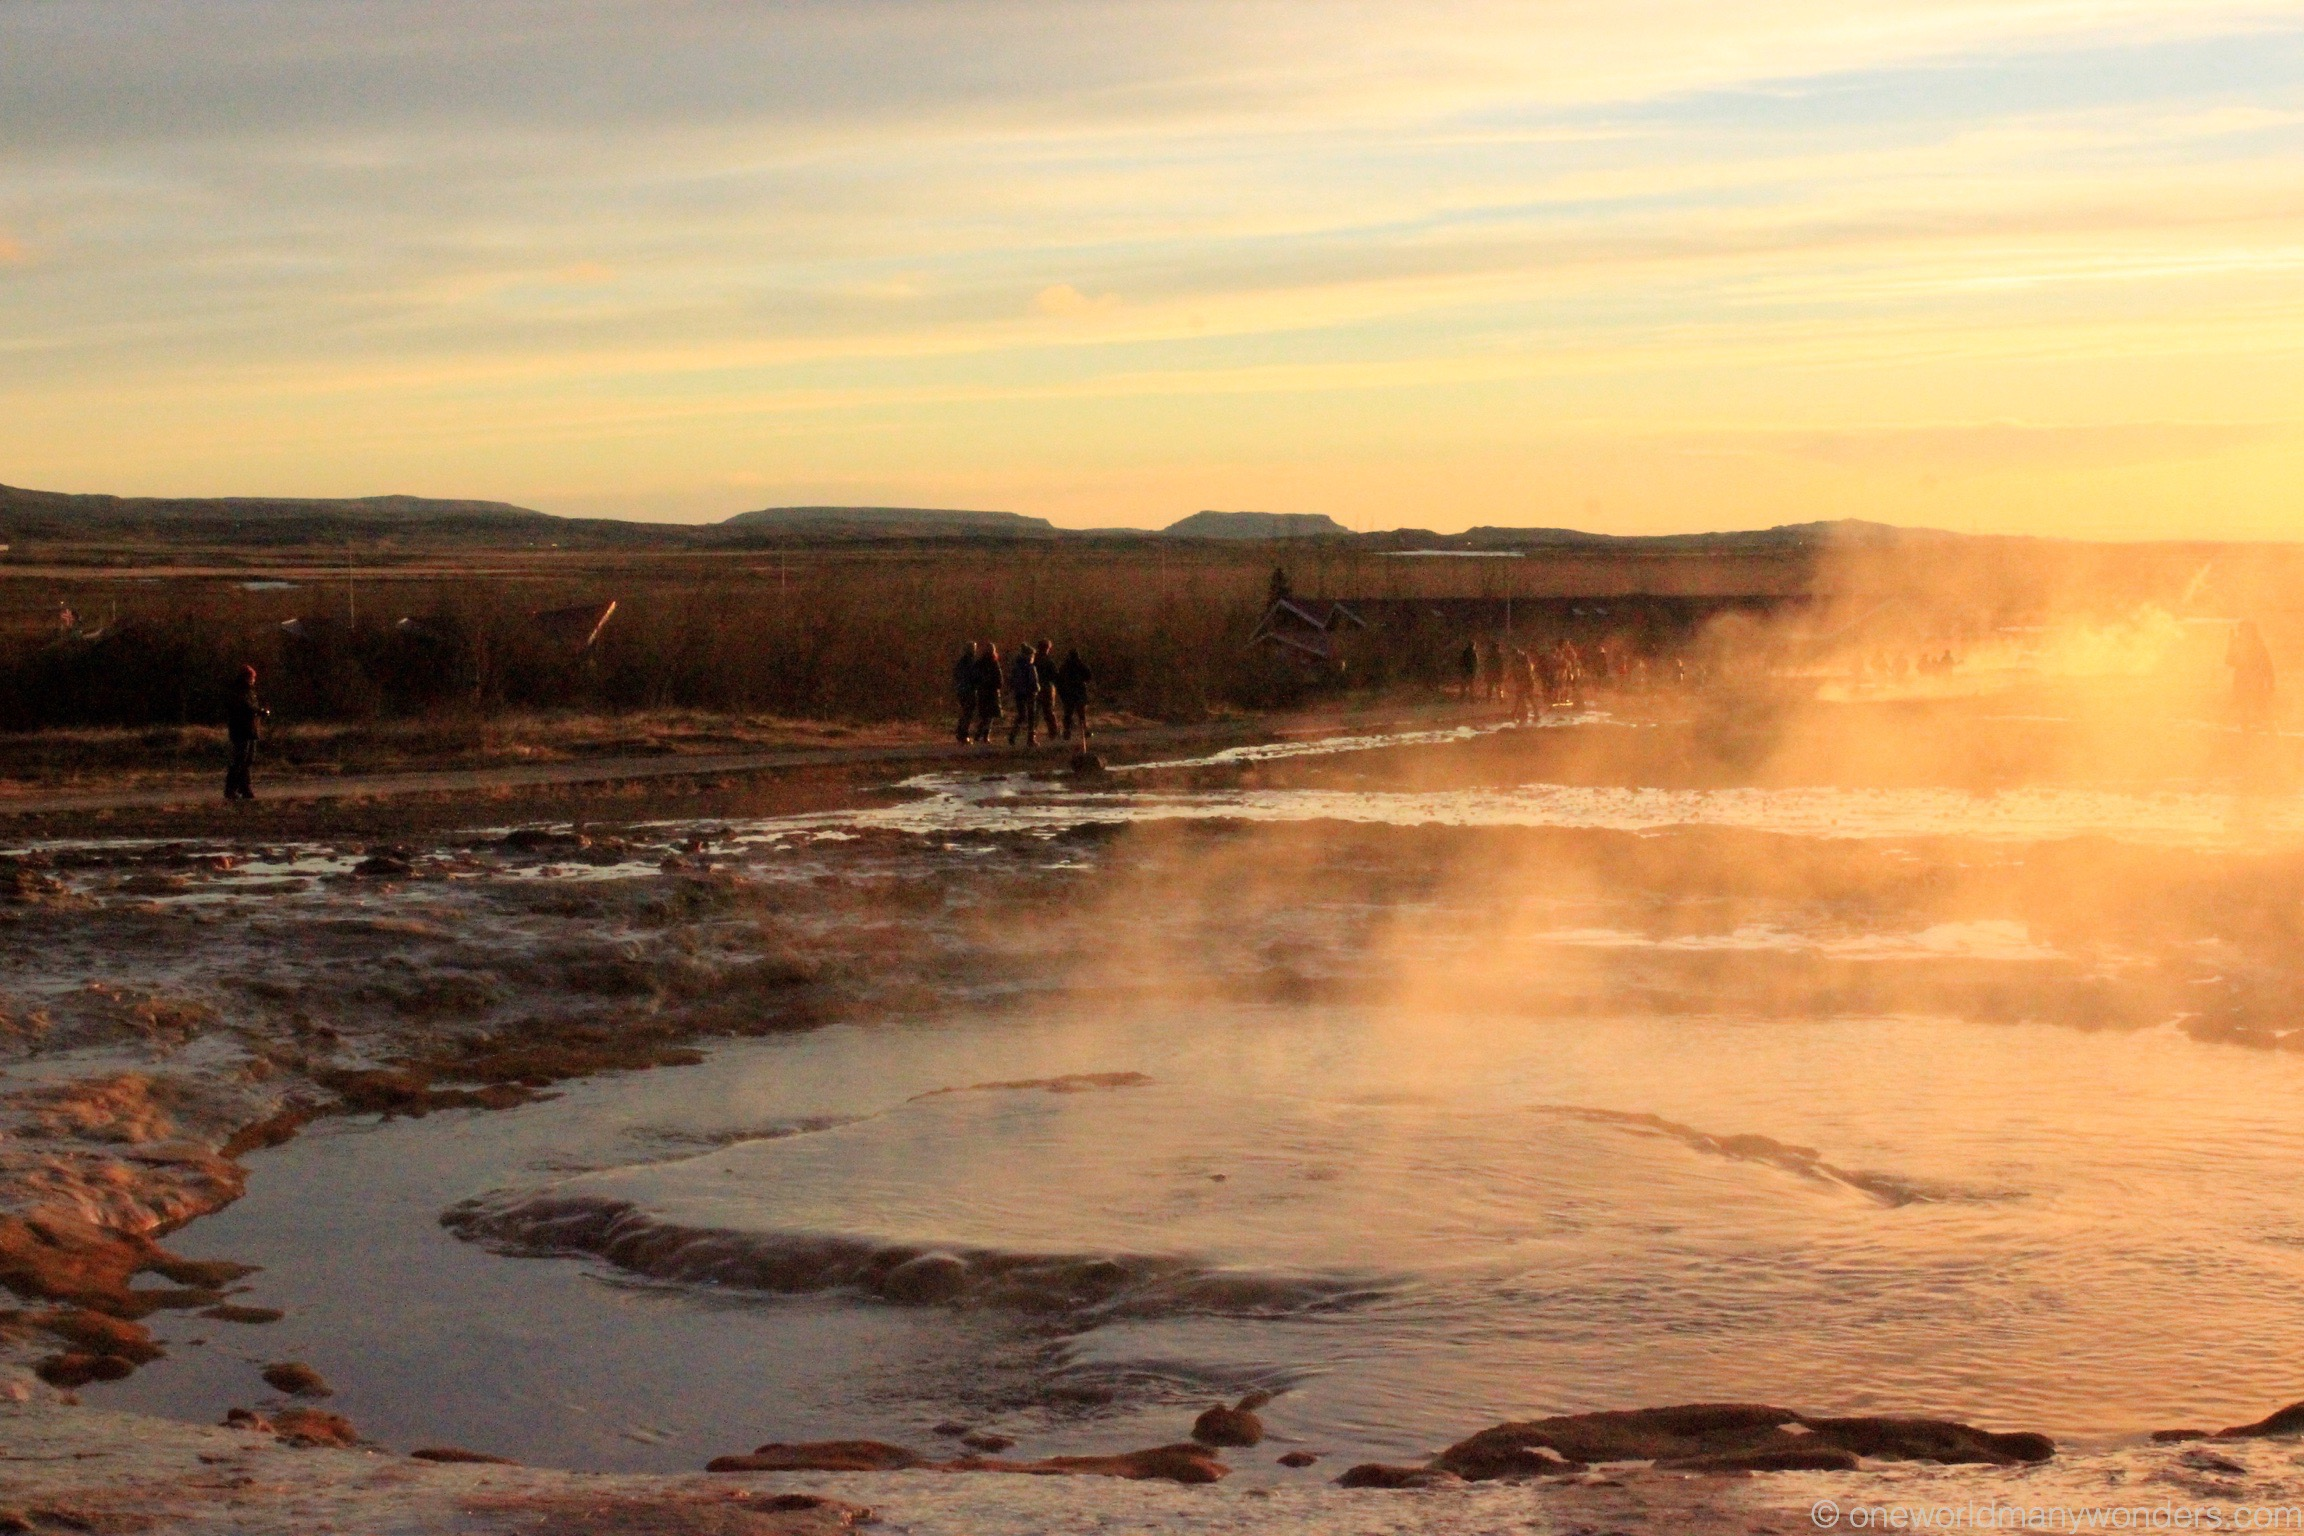 Hot springs at Golden Circle